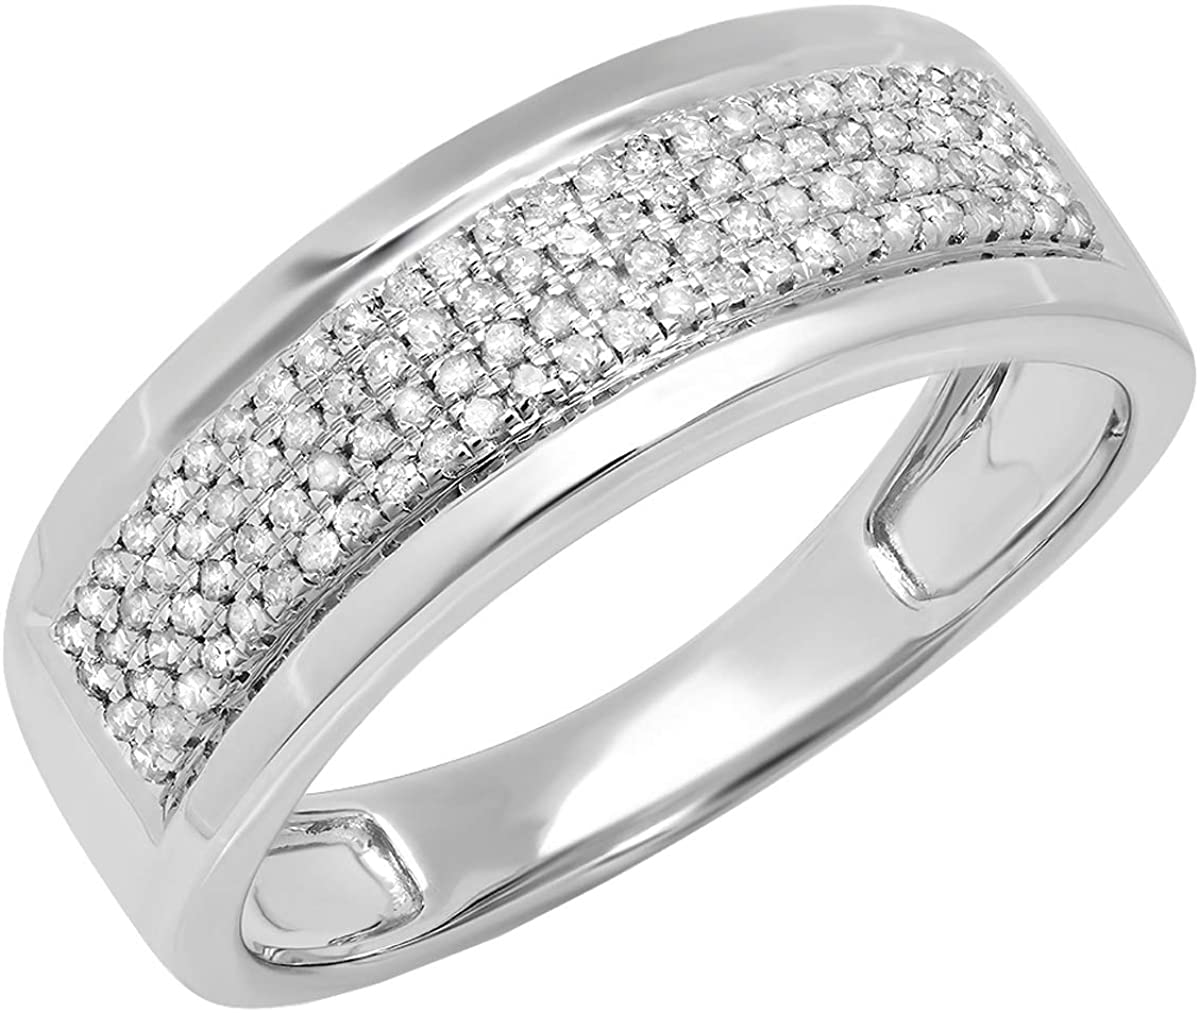 Dazzlingrock Collection 0.40 Carat (ctw) Round Lab Grown Diamond Mens Flashy Wedding Ring, Sterling Silver